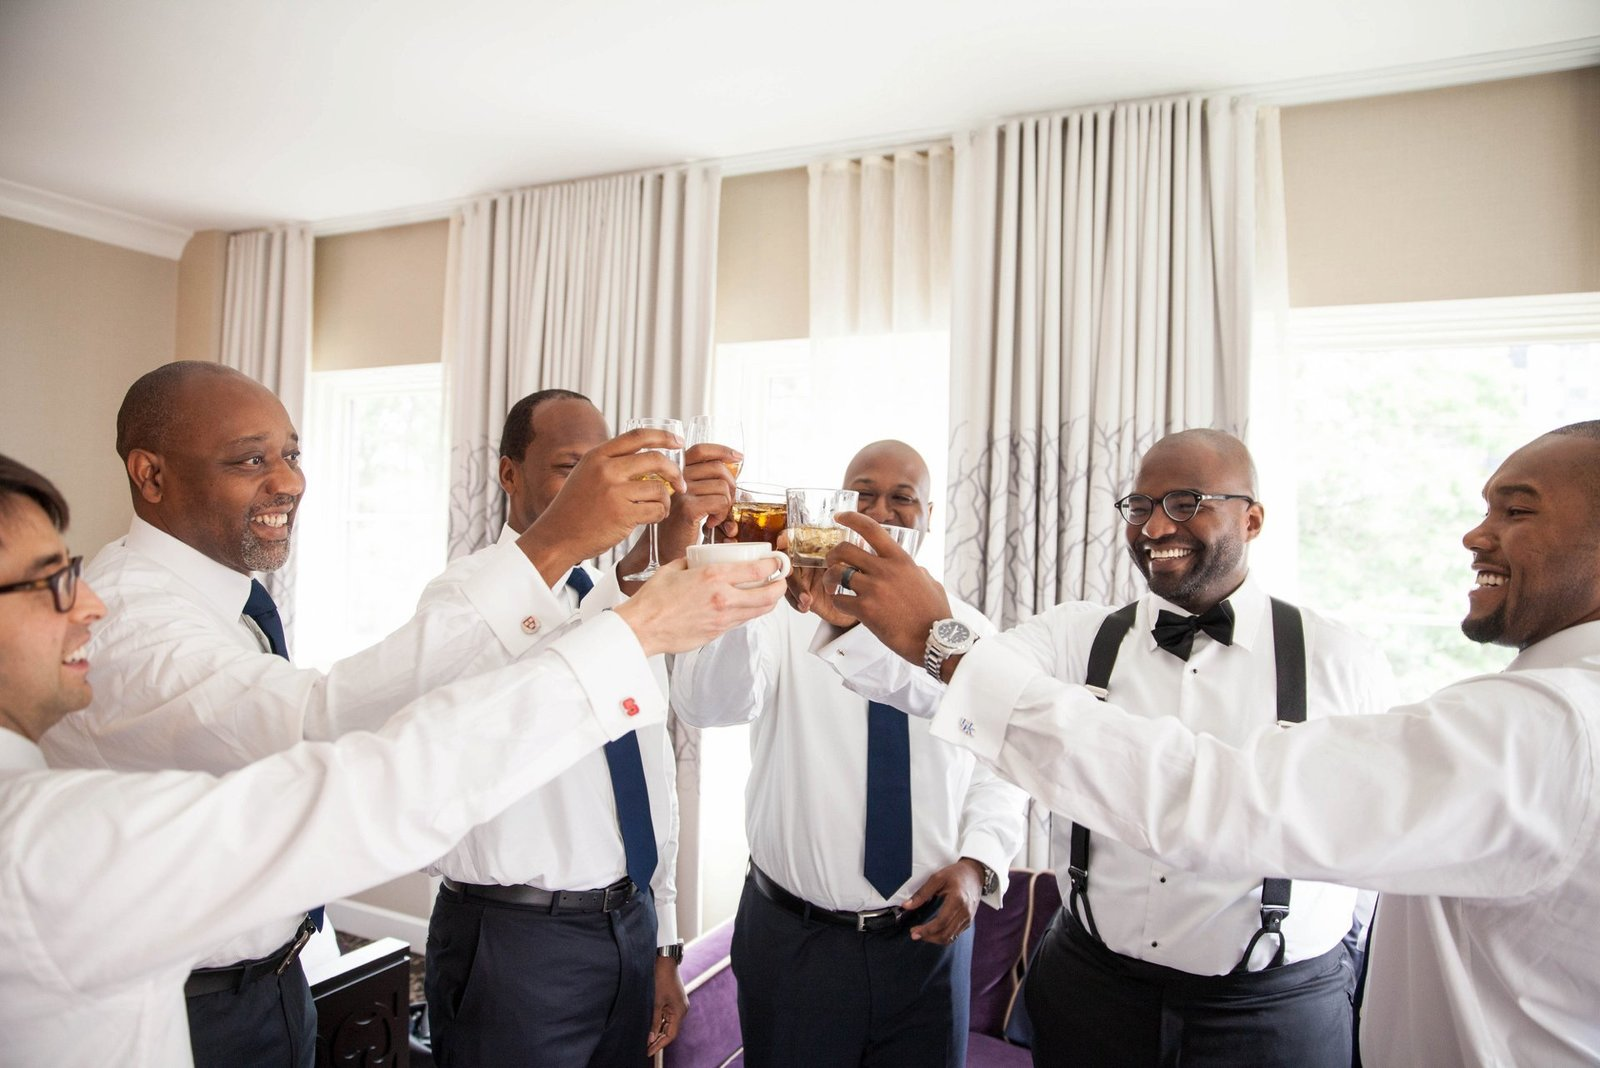 groomsmen-getting-ready-for-wedding